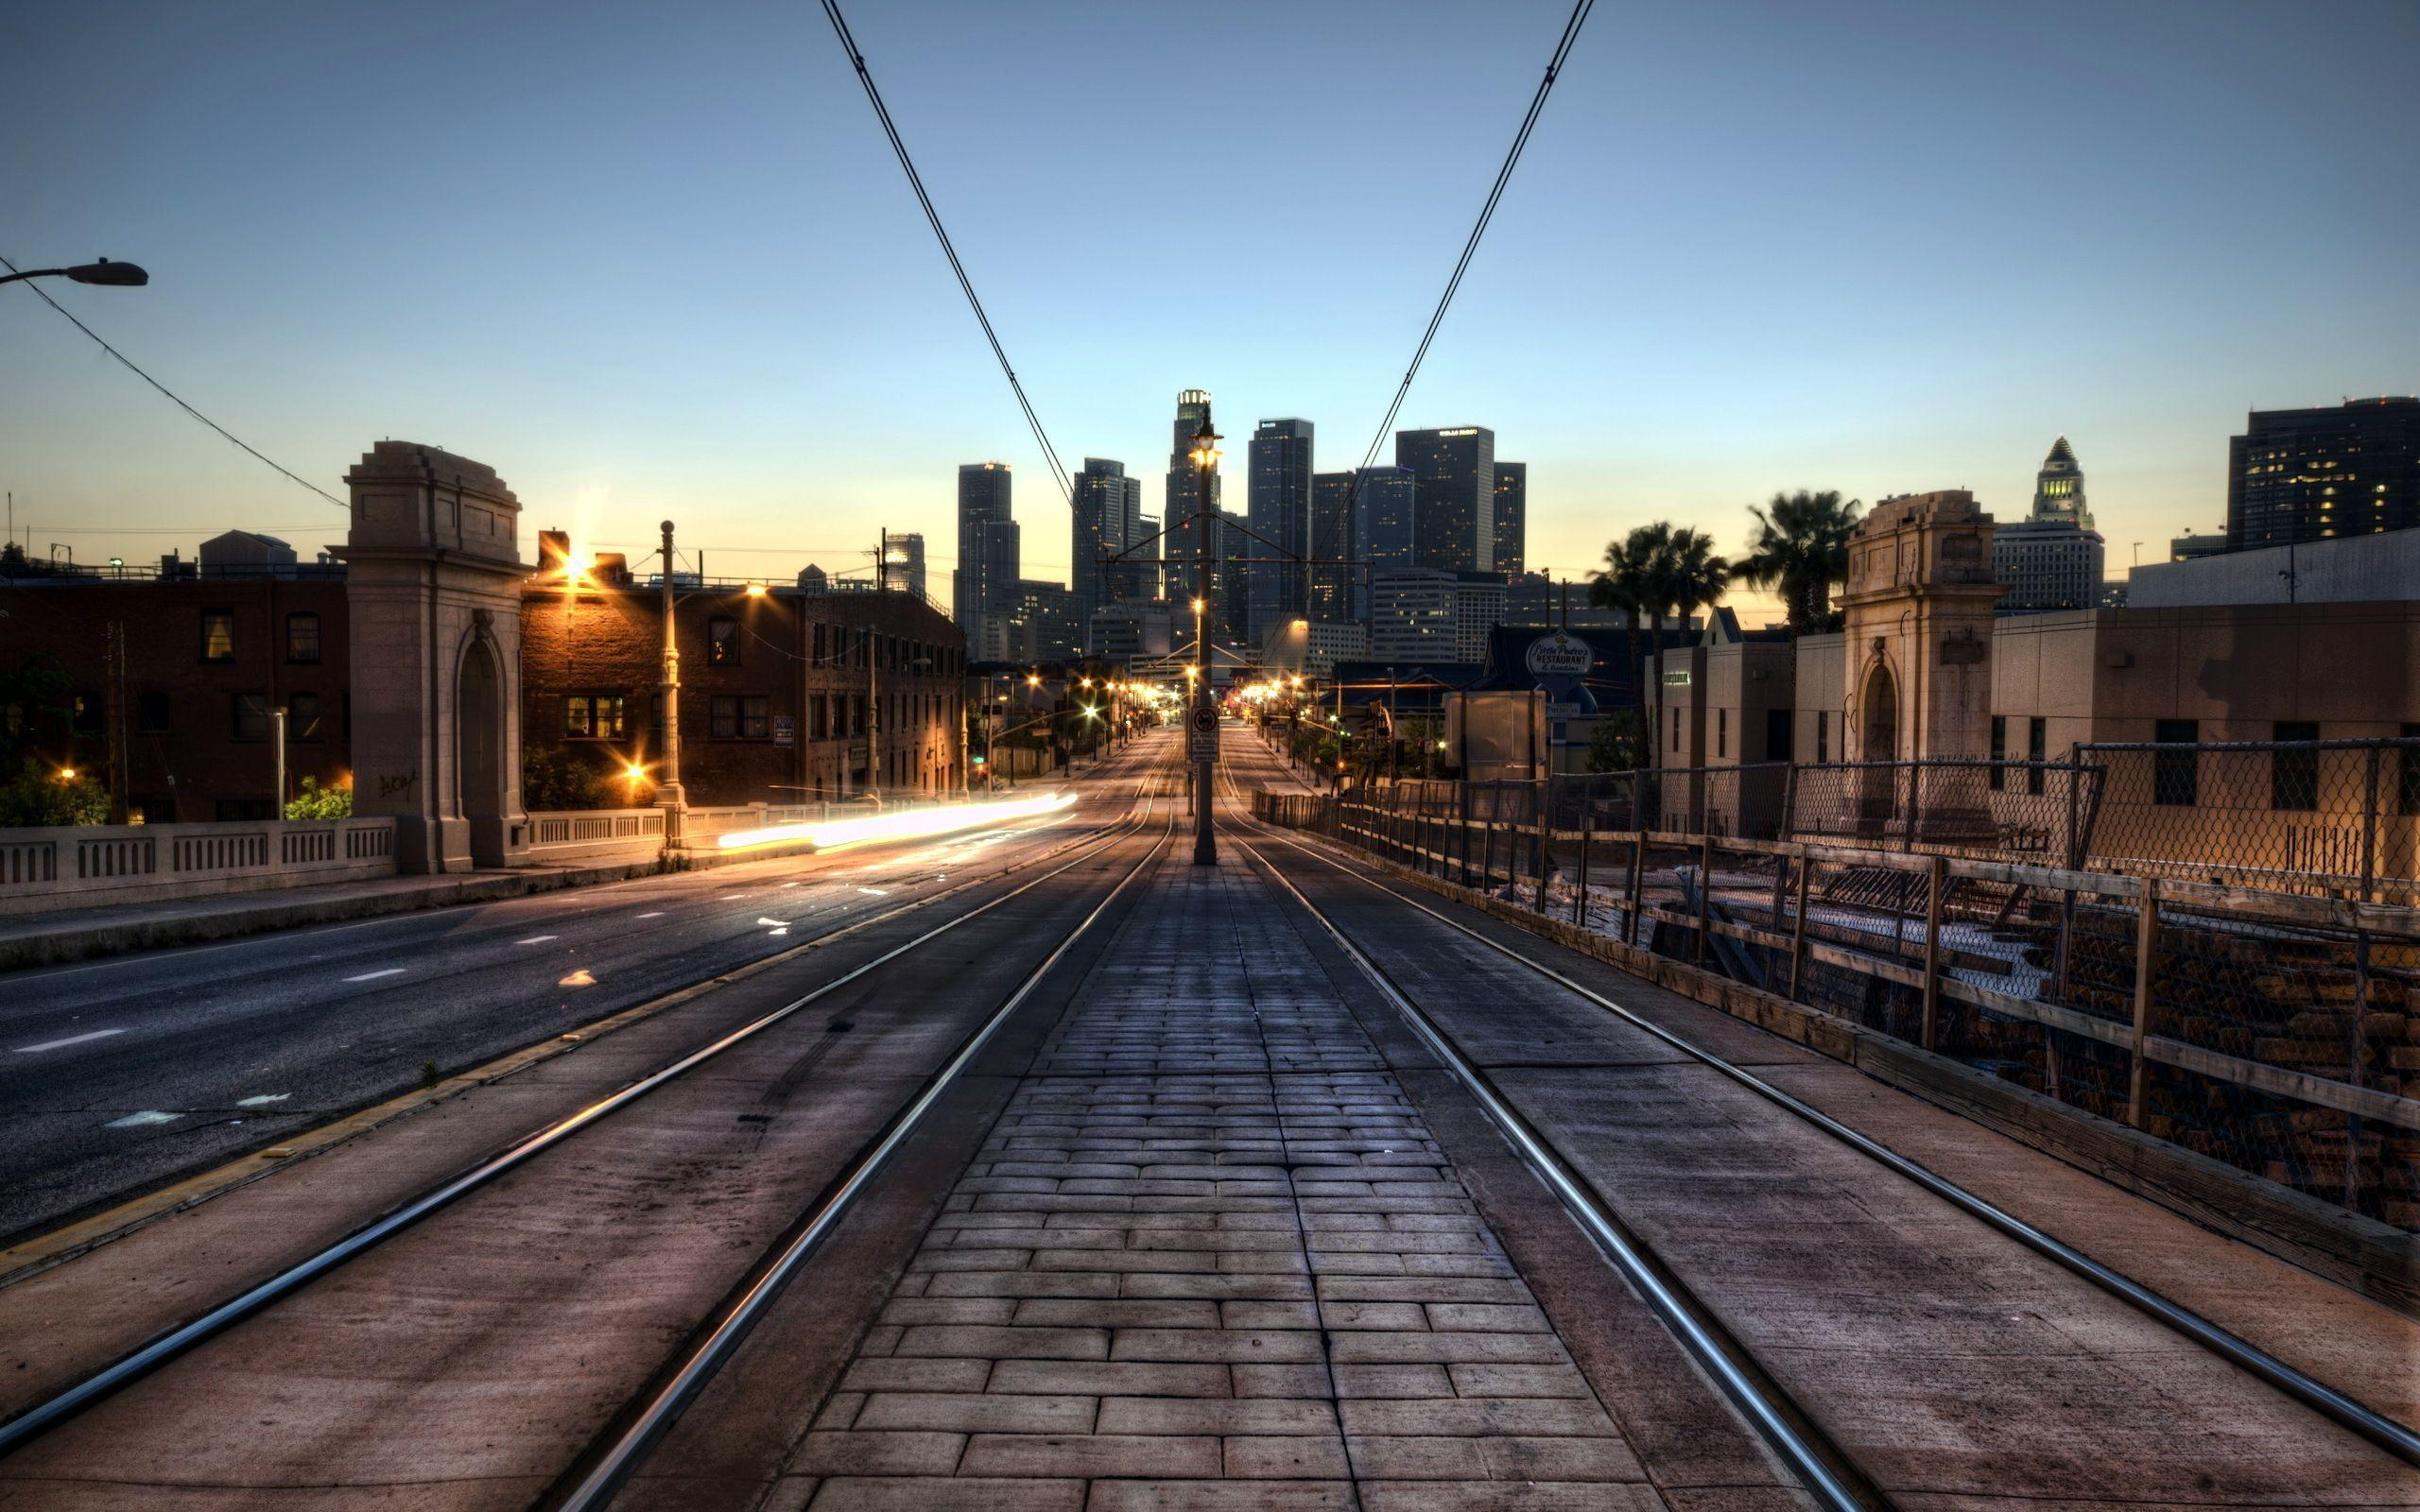 Railway Los Angeles Wallpapers | Pictures